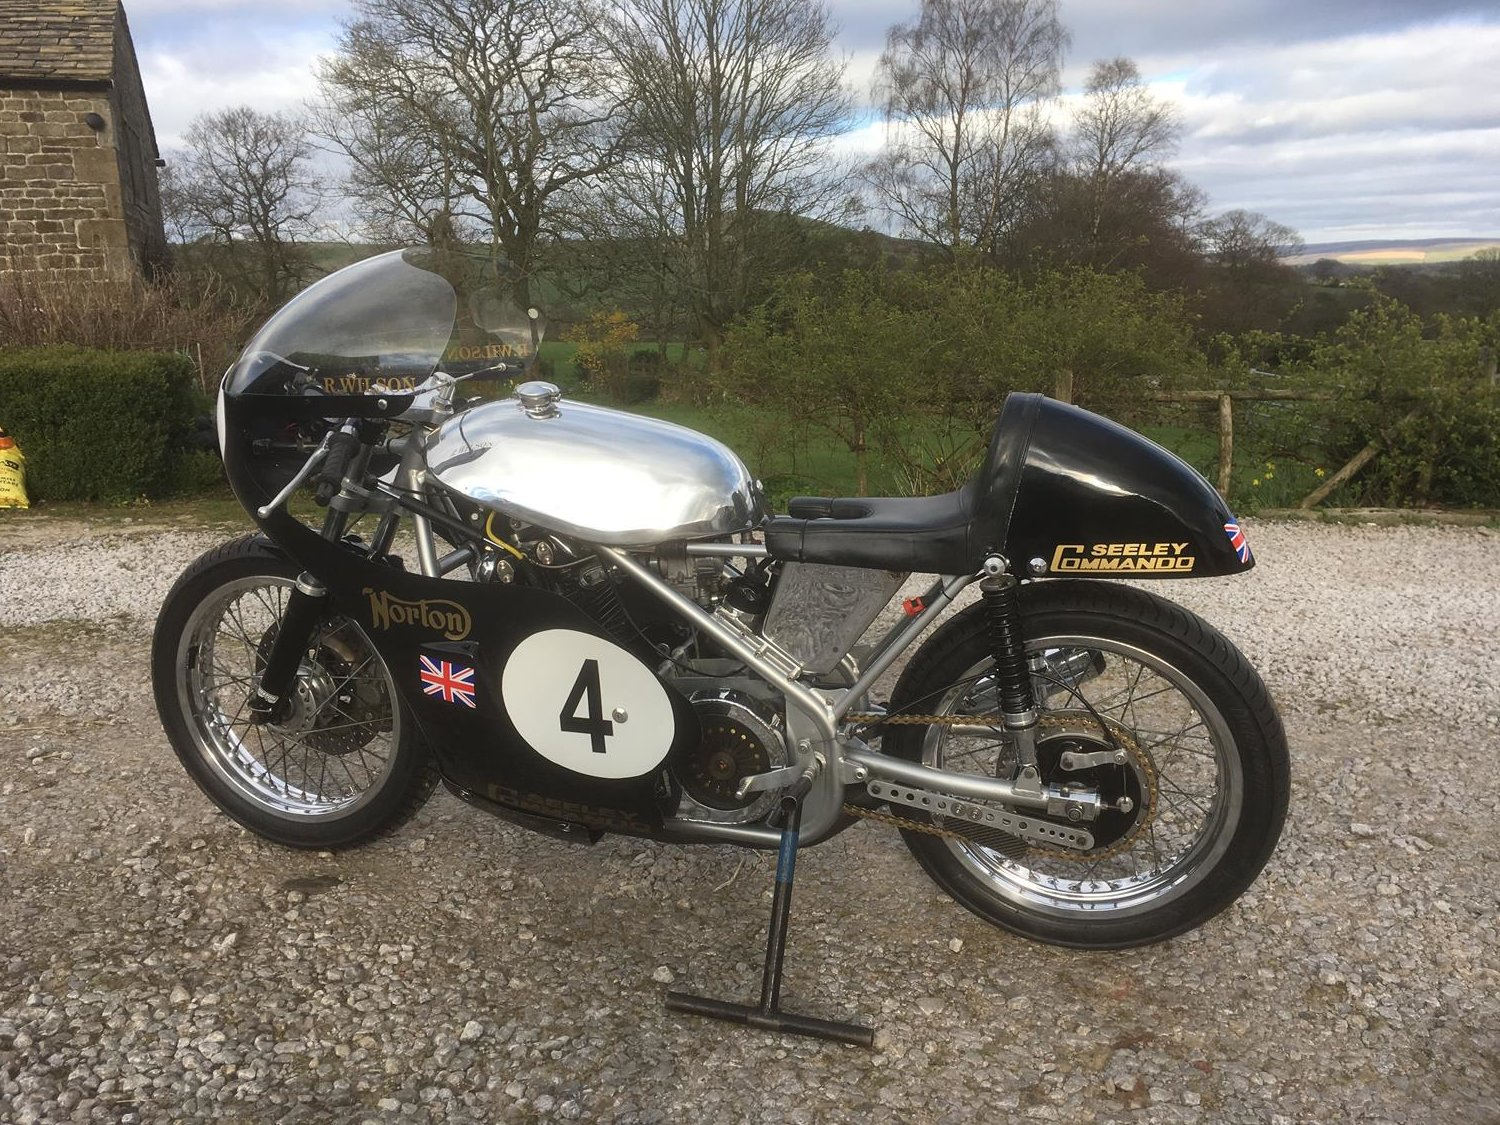 1972 Norton / Seeley 750 Commando Race Bike SOLD (picture 2 of 3)